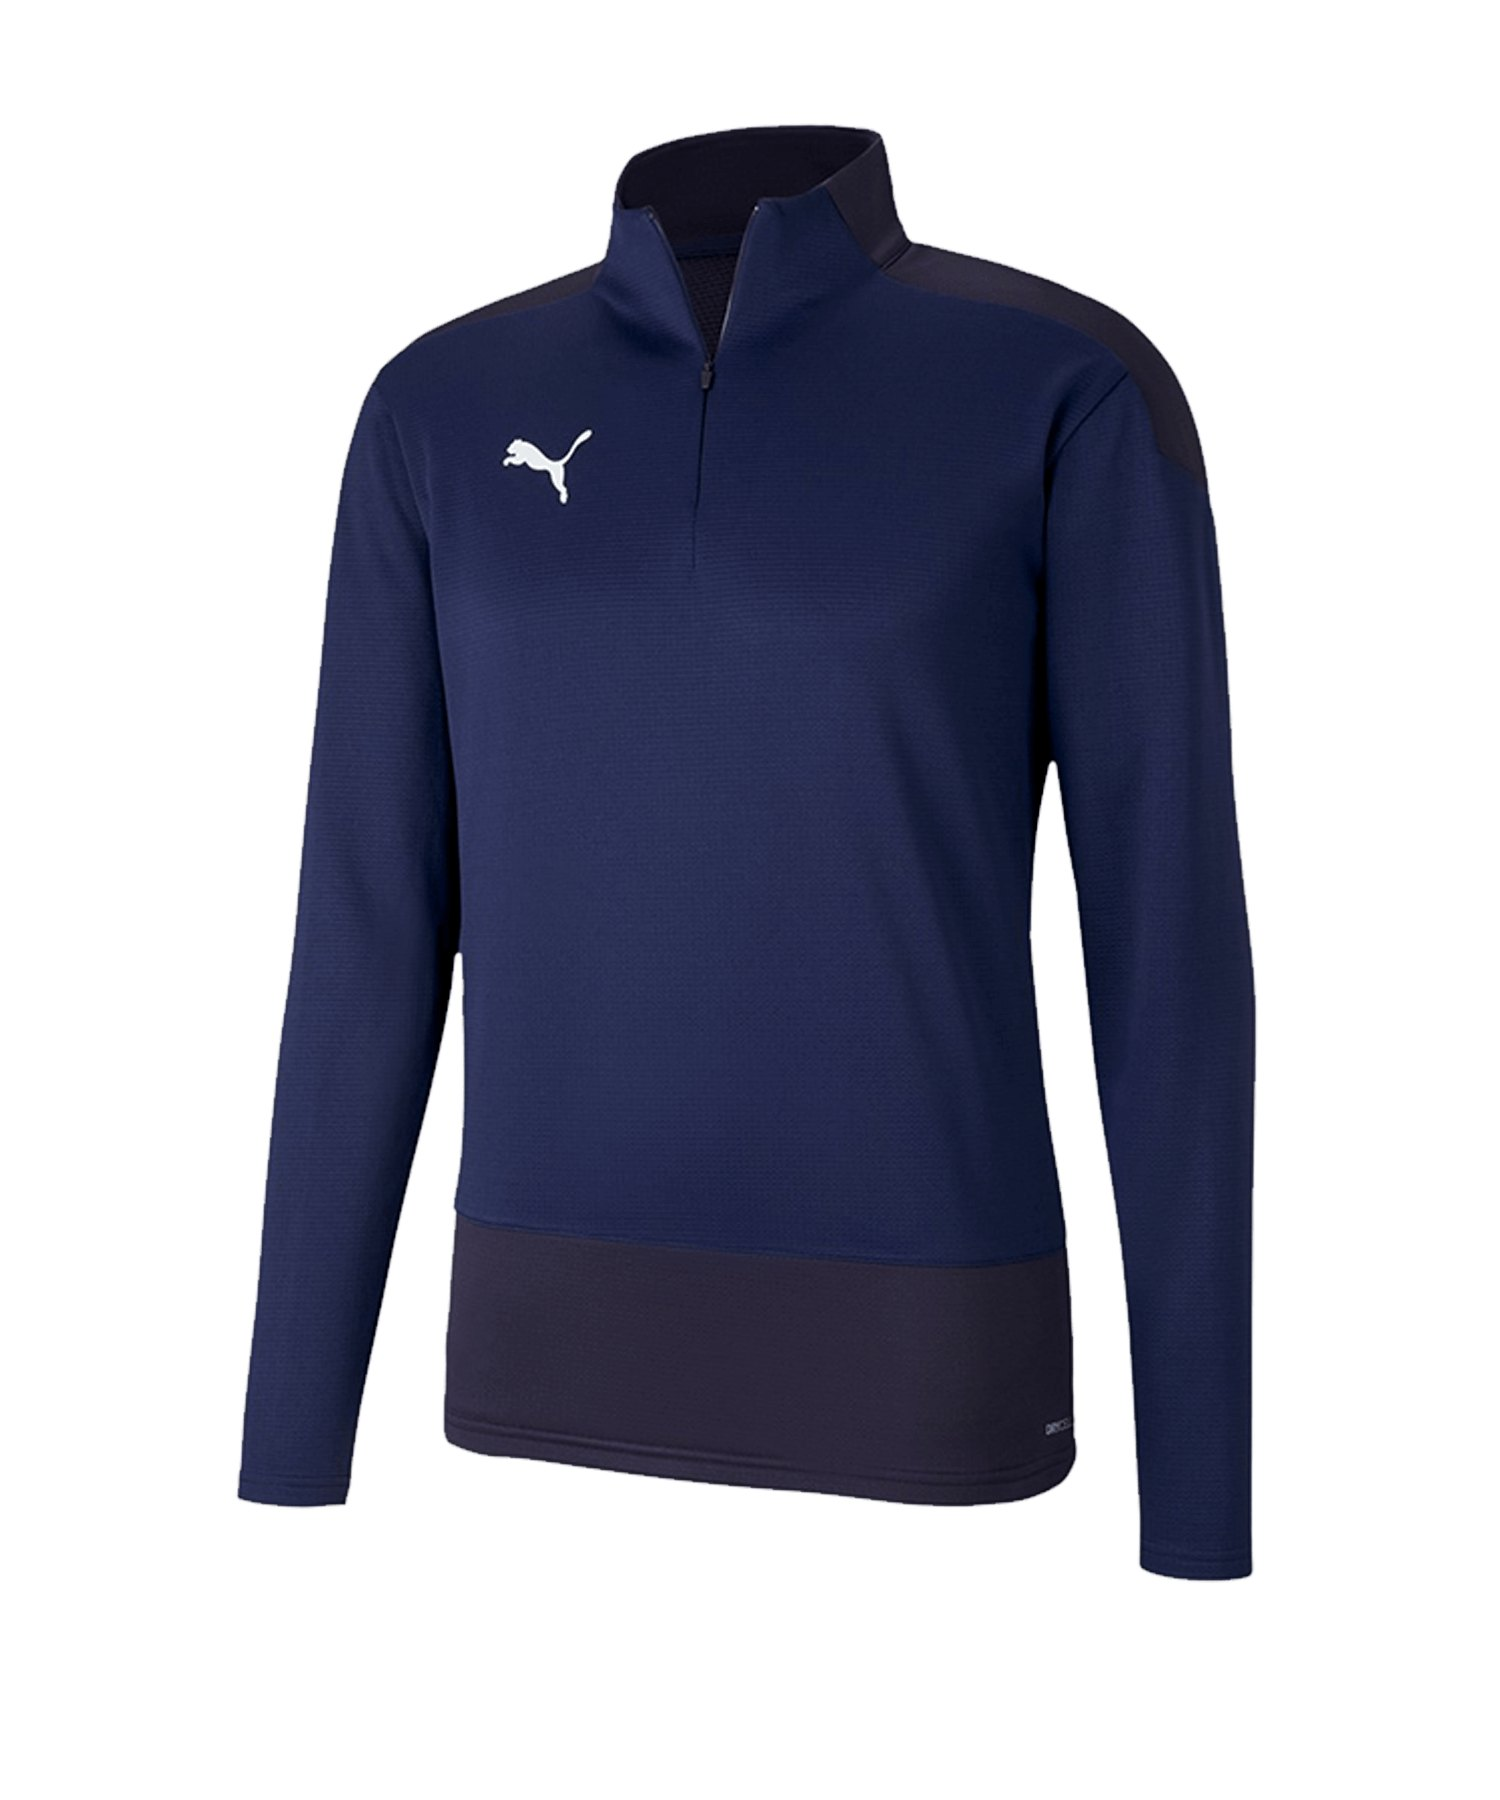 PUMA teamGOAL 23 Training 1/4 Zip Top Blau F06 - blau